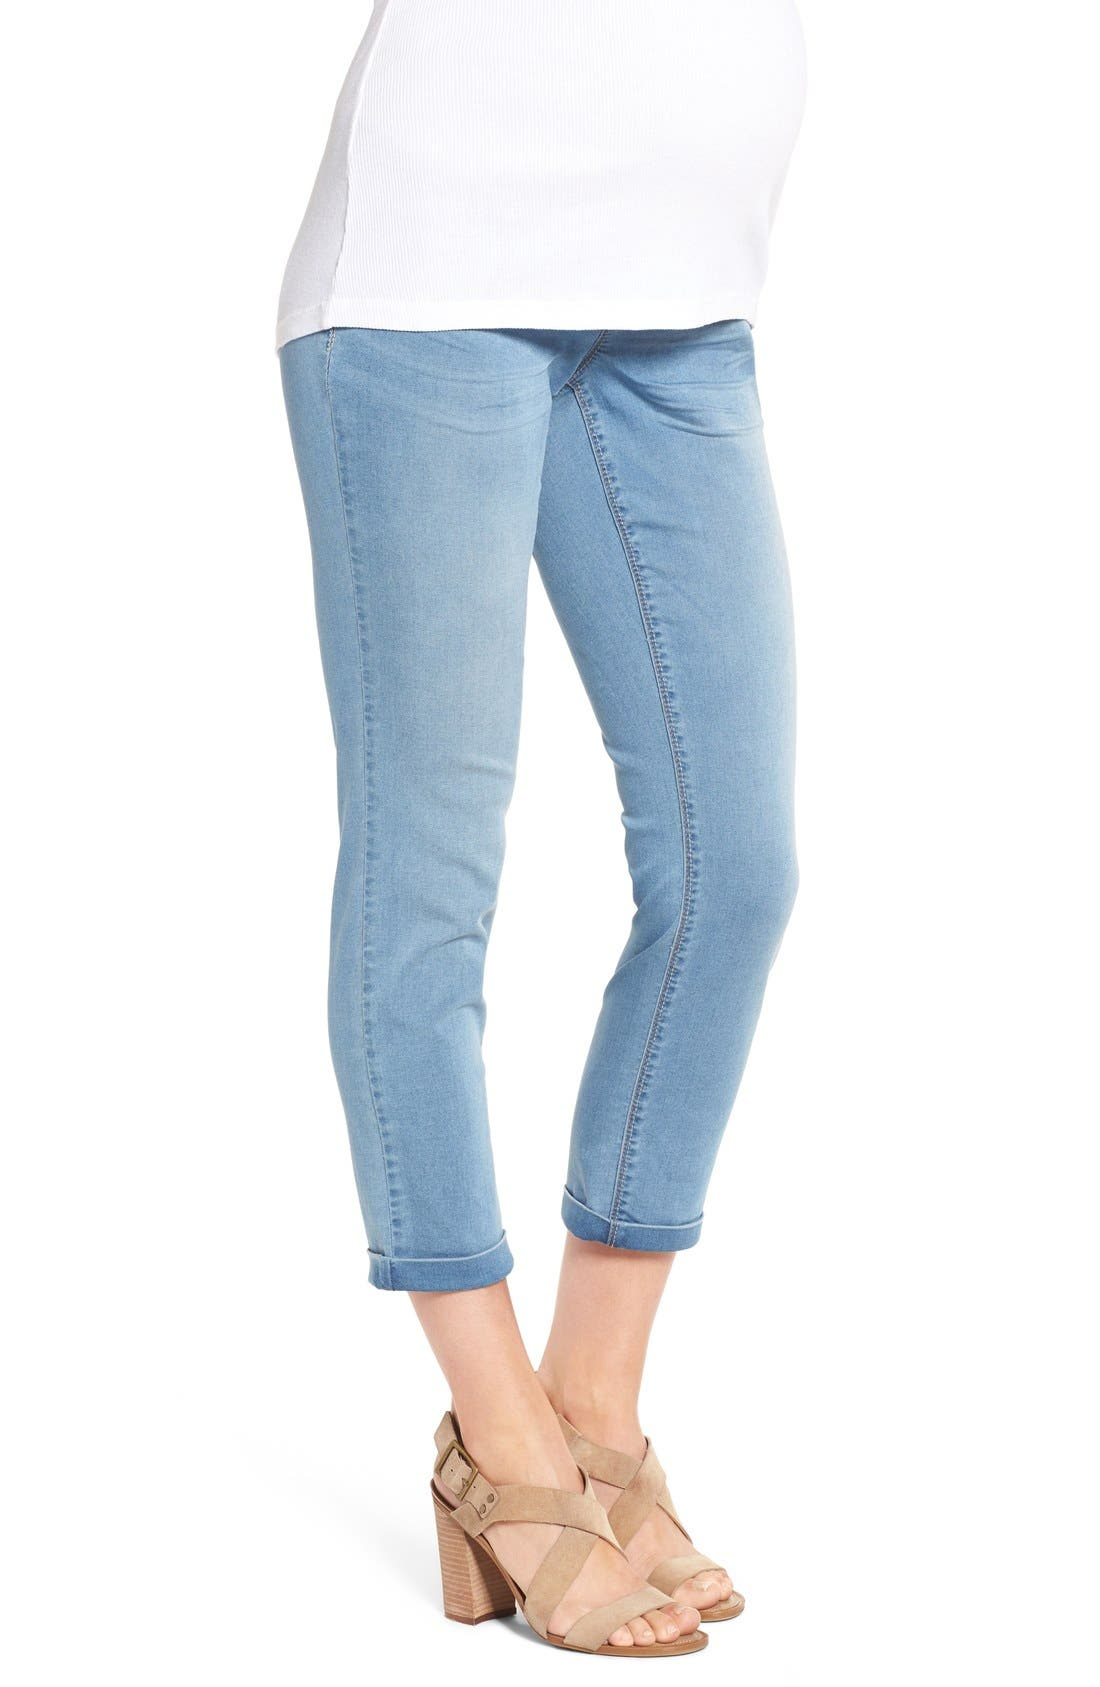 'Ankle Biter' Over the Bump Rolled Cuff Maternity Skinny Jeans,                             Alternate thumbnail 3, color,                             452